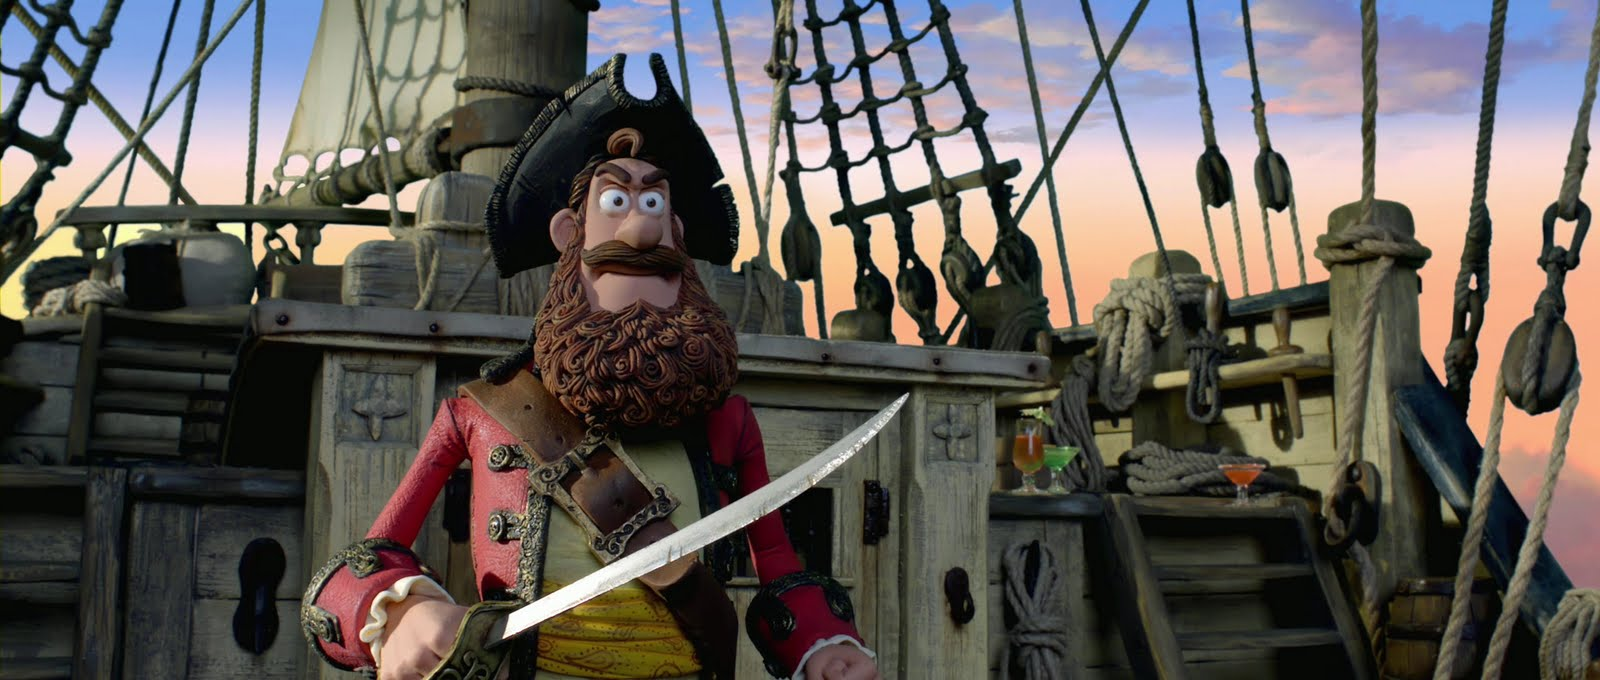 Us Trailer For Aardman Animation S The Pirates Band Of Misfits